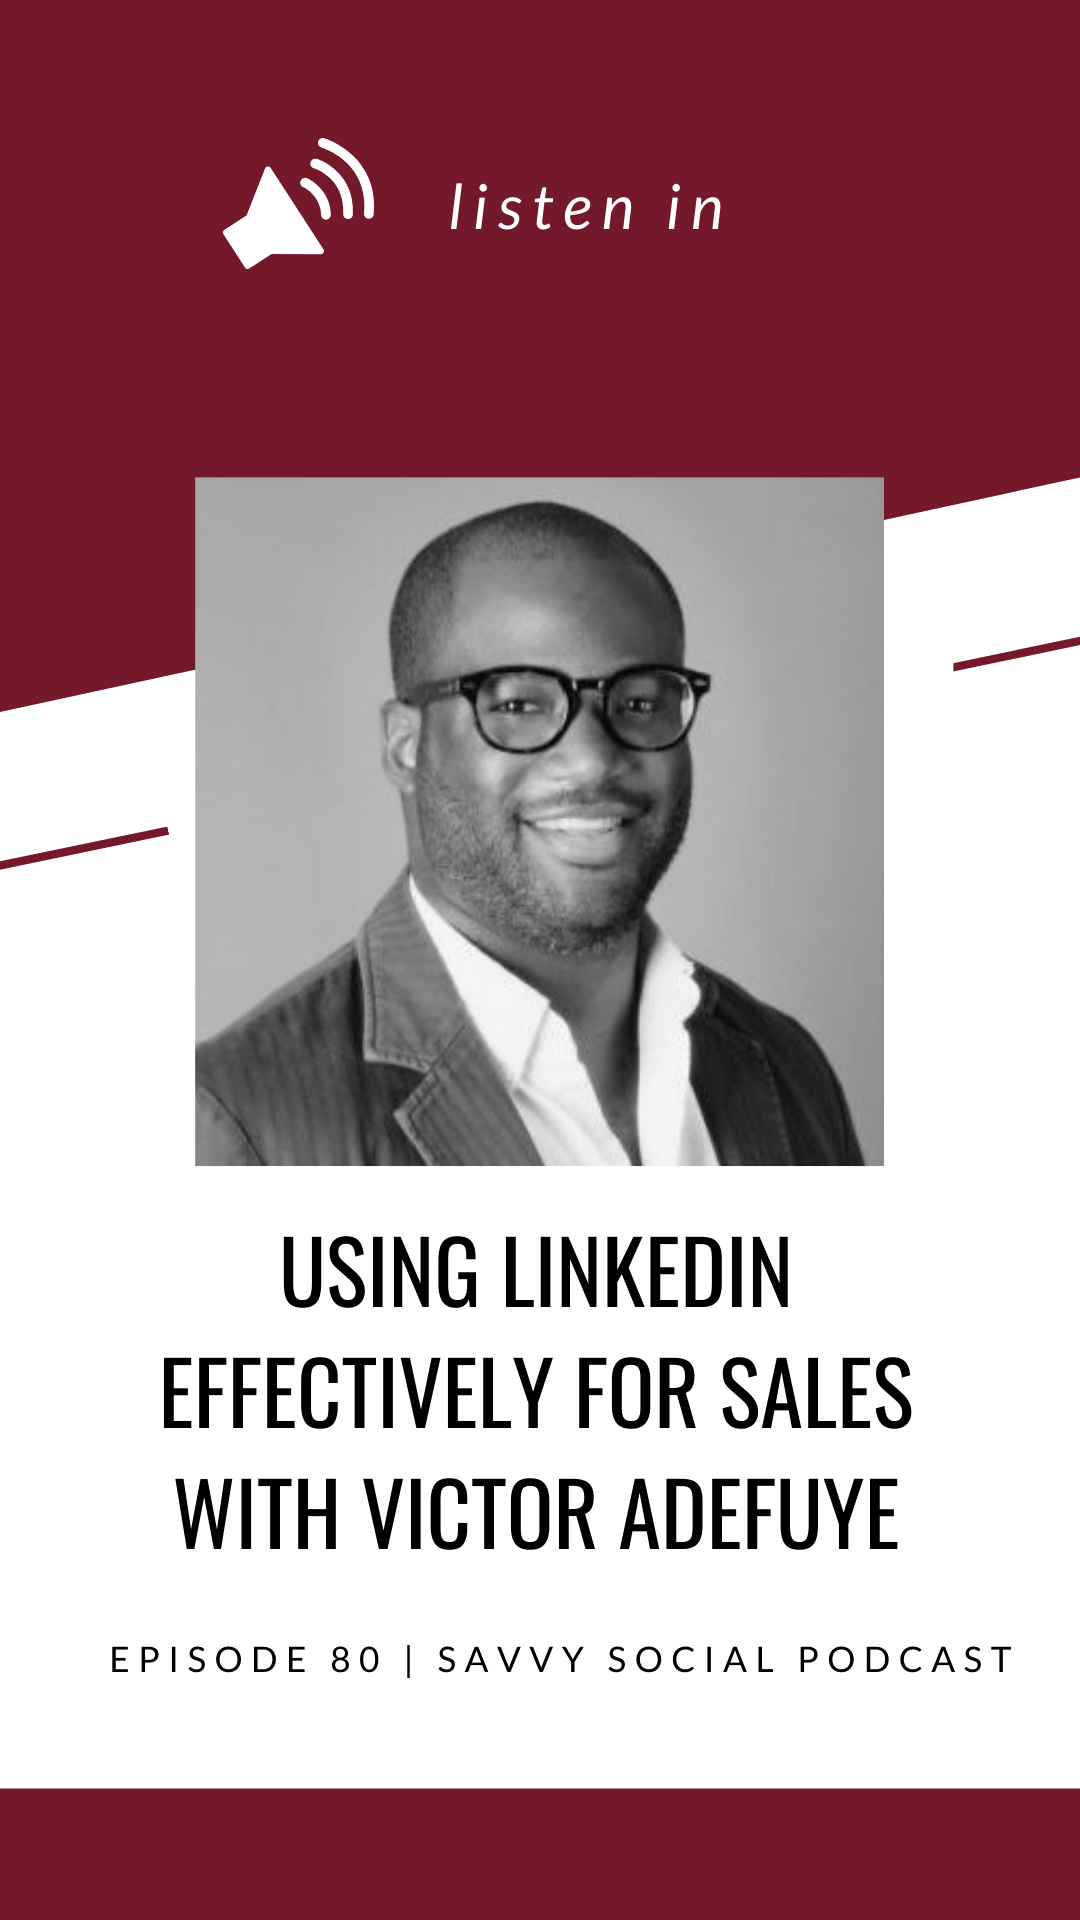 Whether you love the sales process or feel overwhelmed just thinking about it, having strong sales is critical for any business to be successful. This episode with sales expert Victor Adefuye will show you the power of LinkedIn to help close the deal and how LinkedIn can play a role in your sales & marketing strategy!